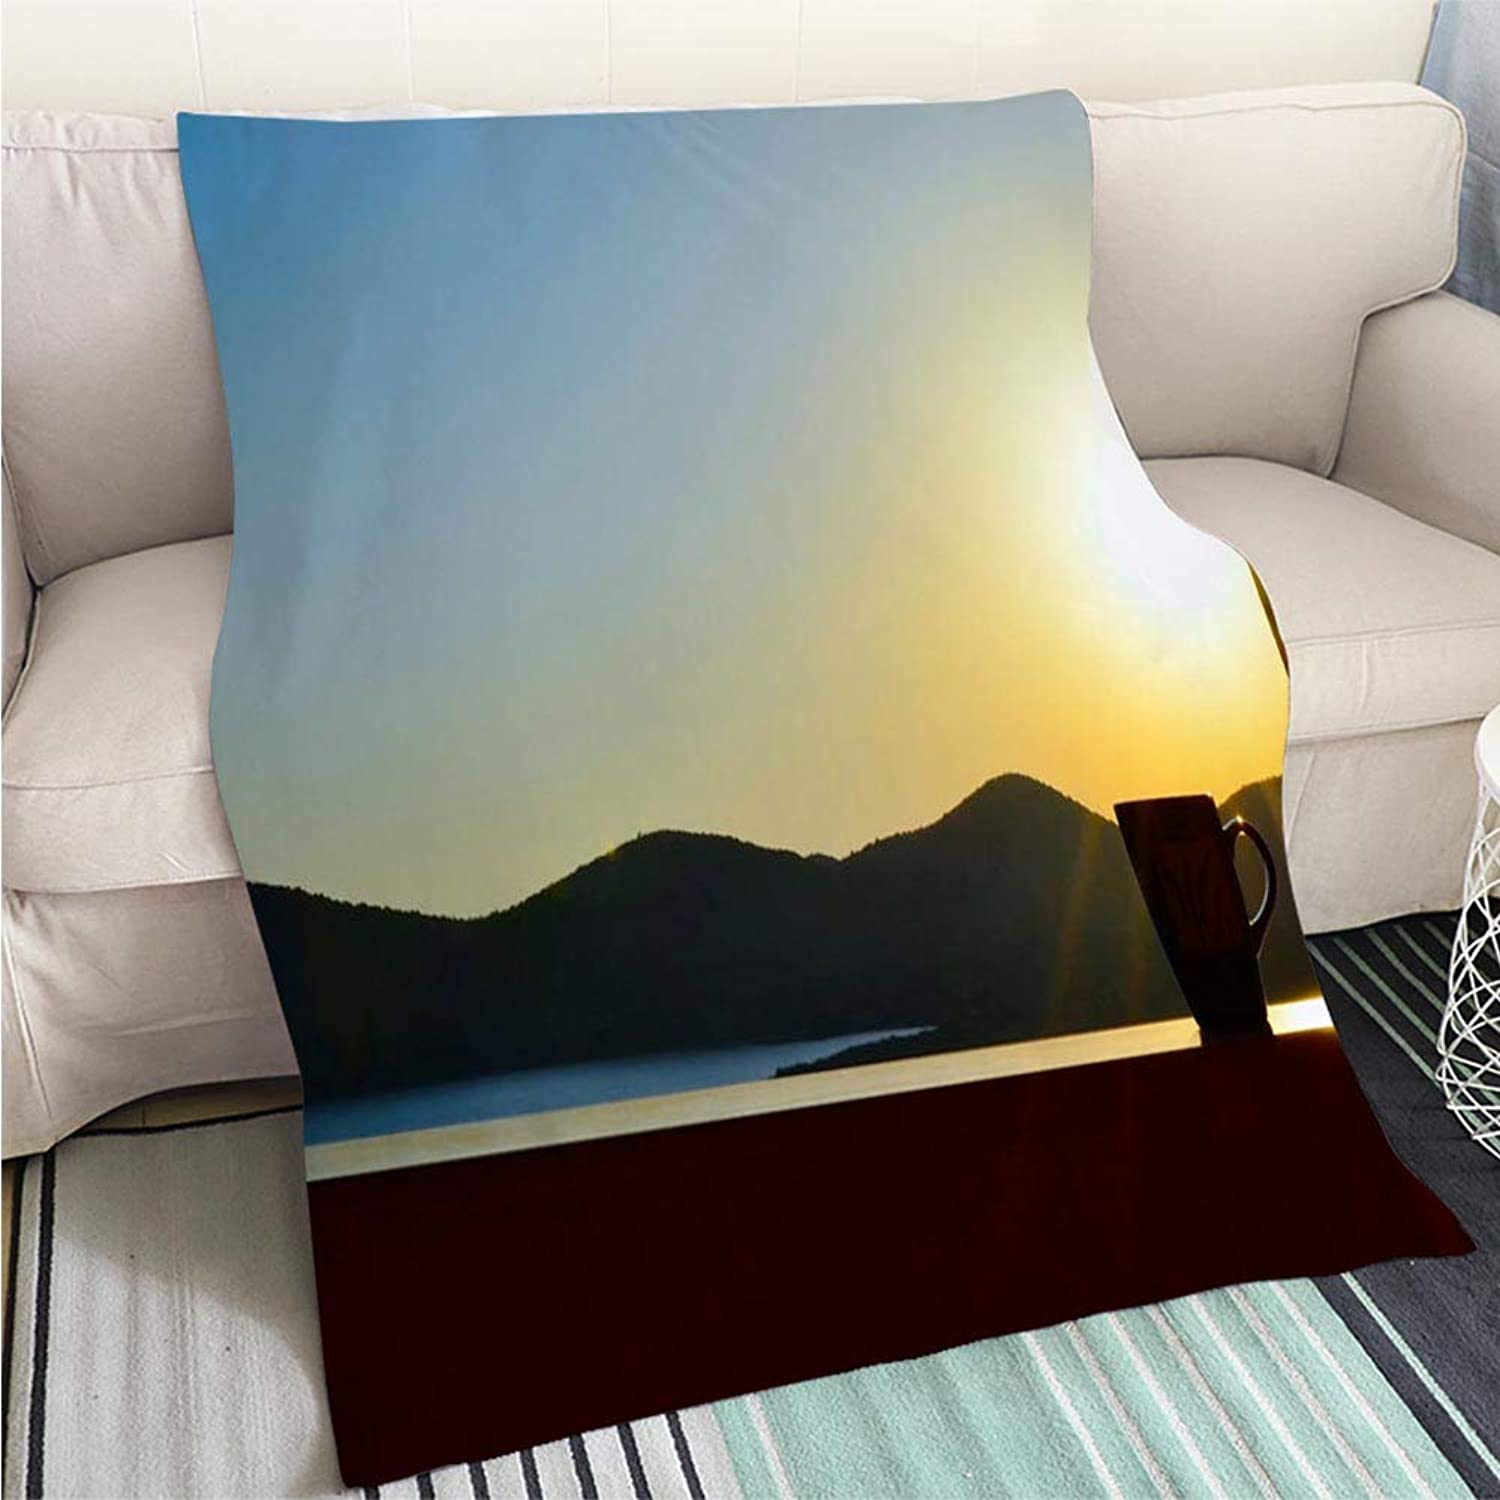 BEICICI Comforter Multicolor Bed or Couch Early Morning Coffee Art Blanket as Bedspread gold White Bed or Couch